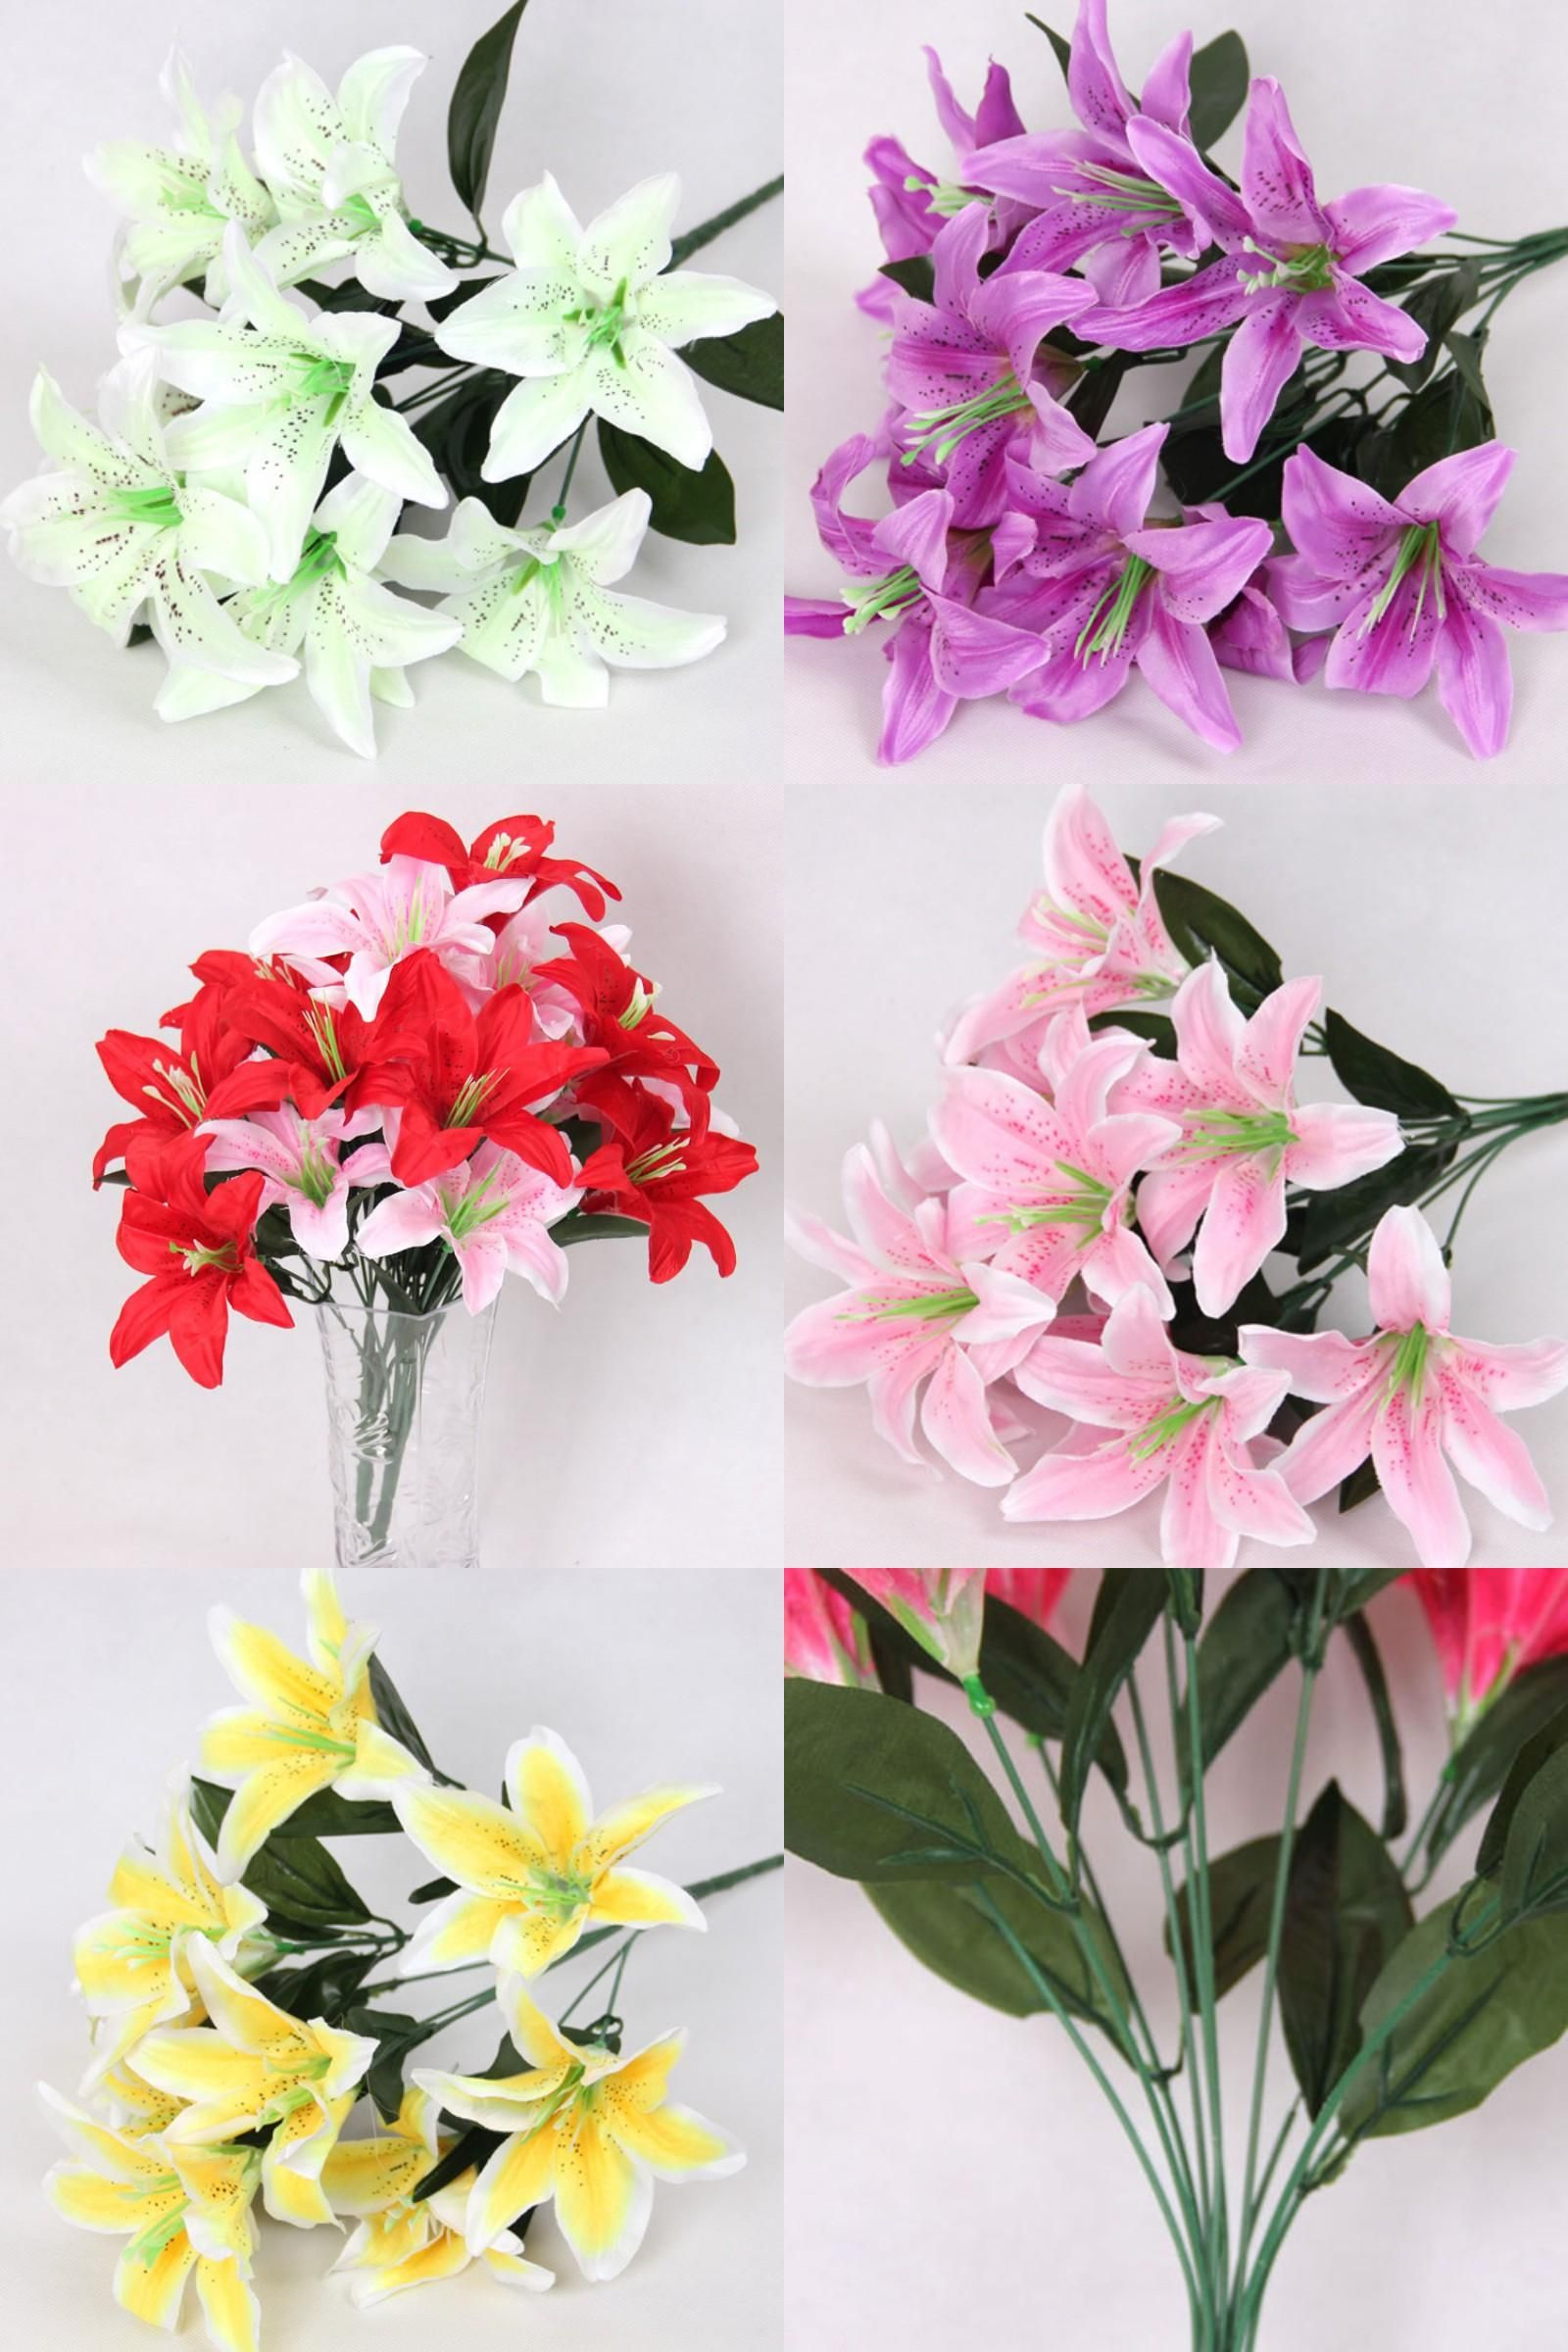 Visit to Buy] 10 Heads Wedding Floral Home Decor Flower Real Touch ...